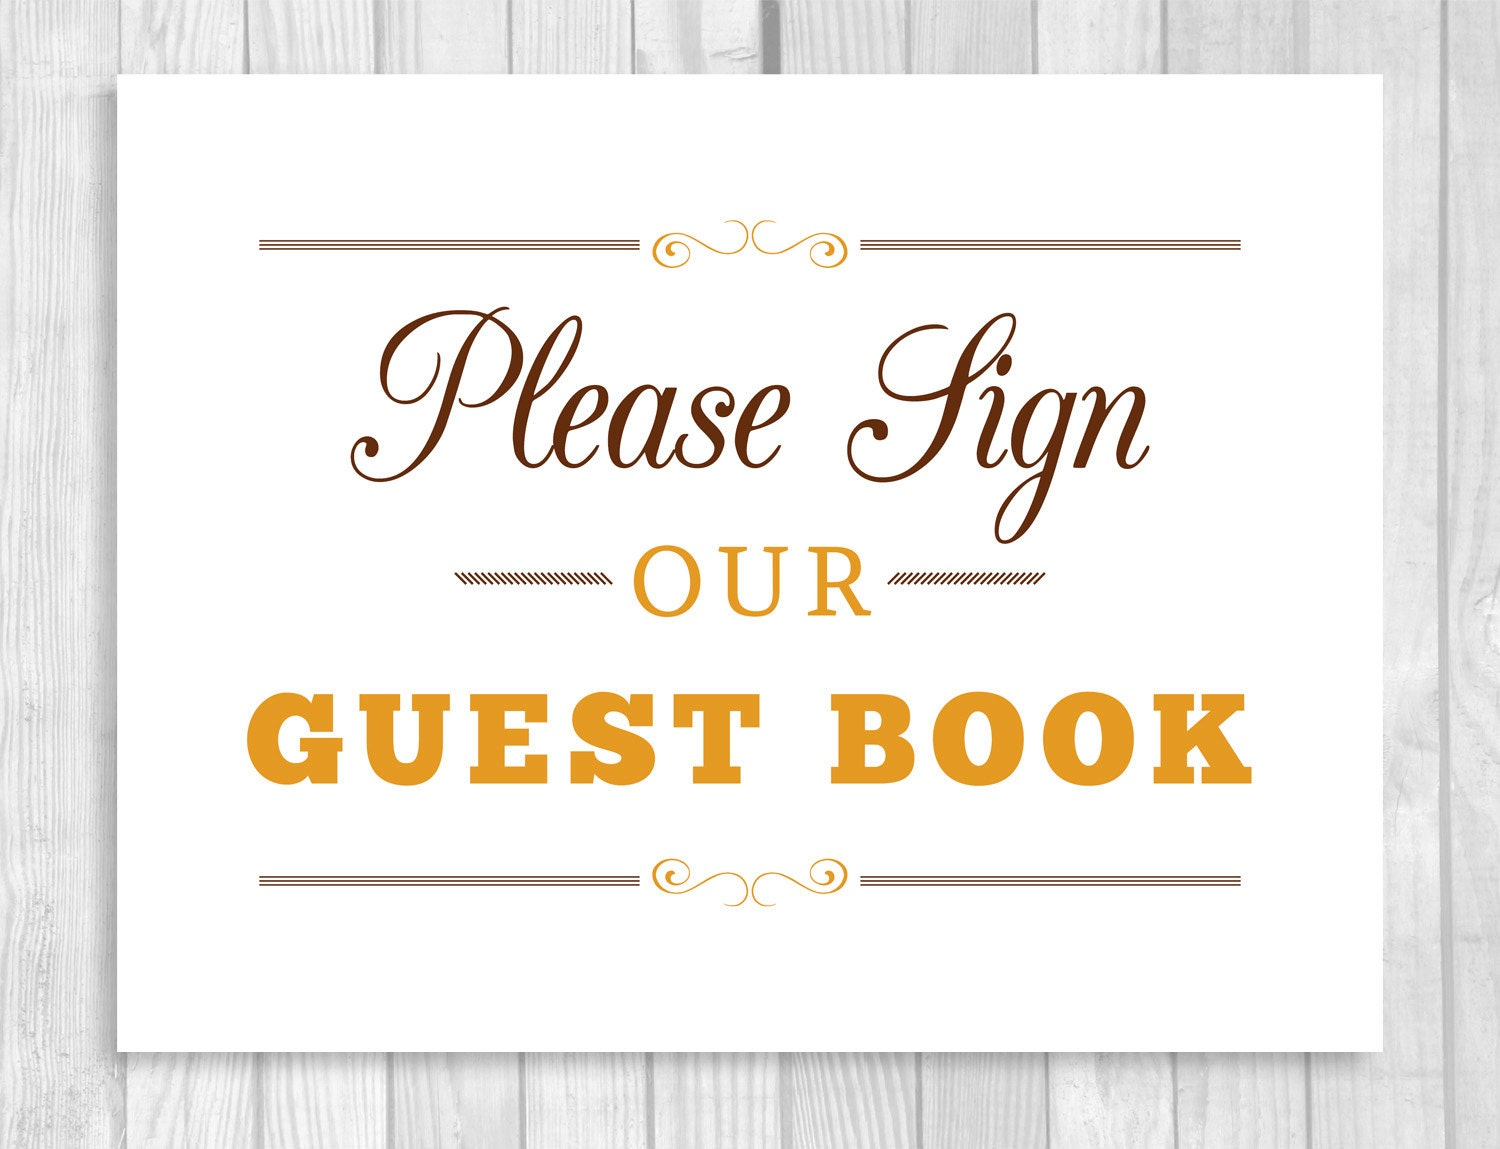 It's just an image of Clean Please Sign Our Guestbook Printable